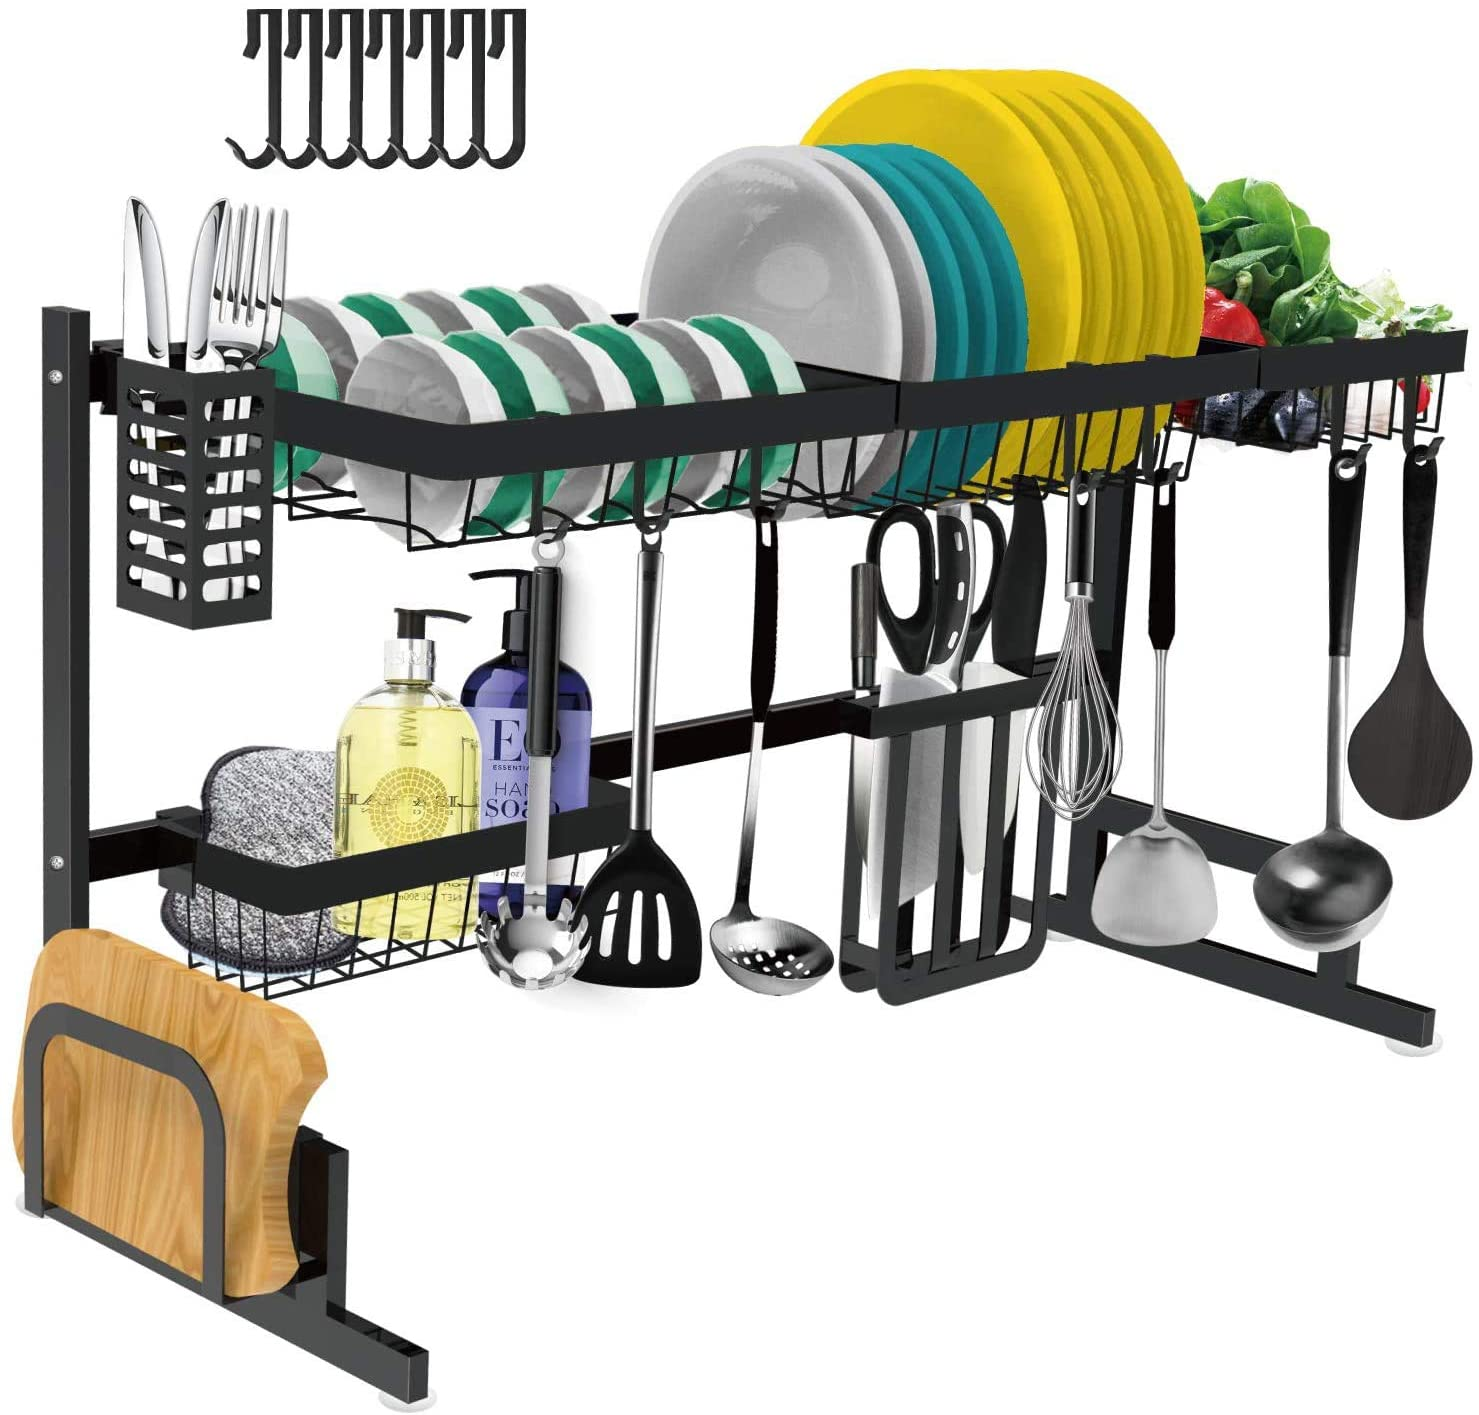 Tsmine Over the Sink Dish Drying Rack for Kitchen Organization